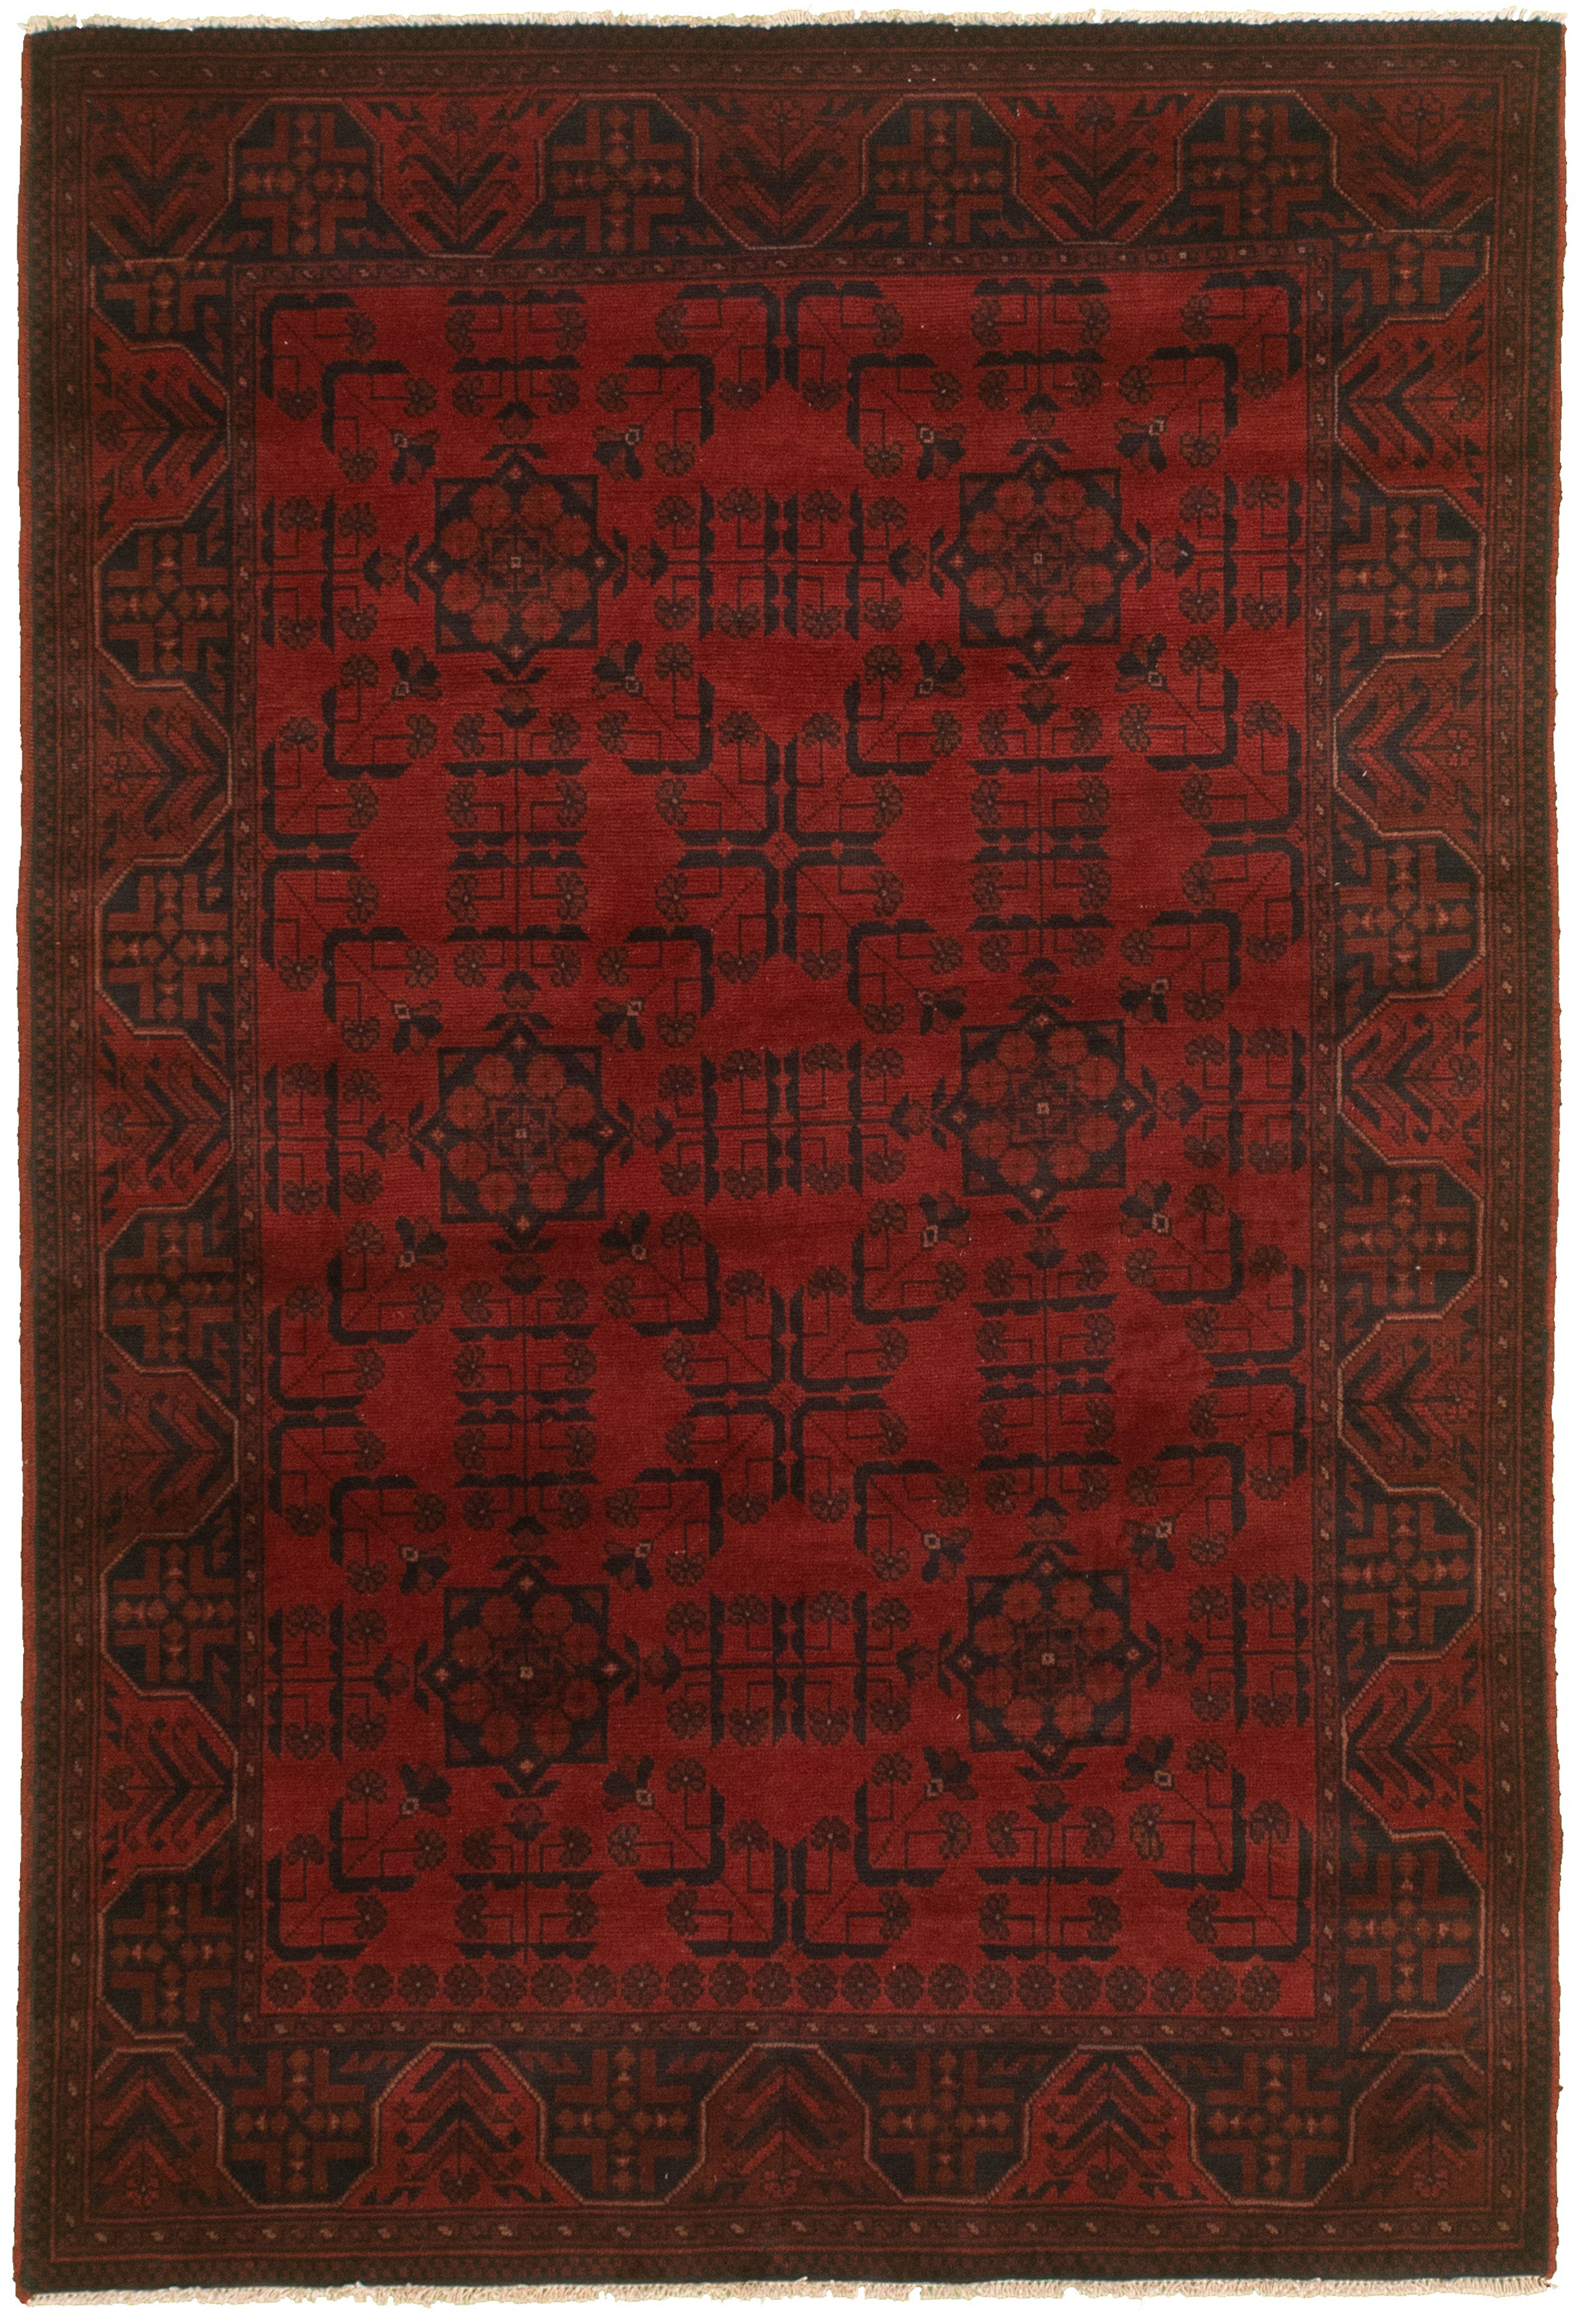 """Hand-knotted Finest Khal Mohammadi Red  Rug 4'4"""" x 6'4""""  Size: 4'4"""" x 6'4"""""""